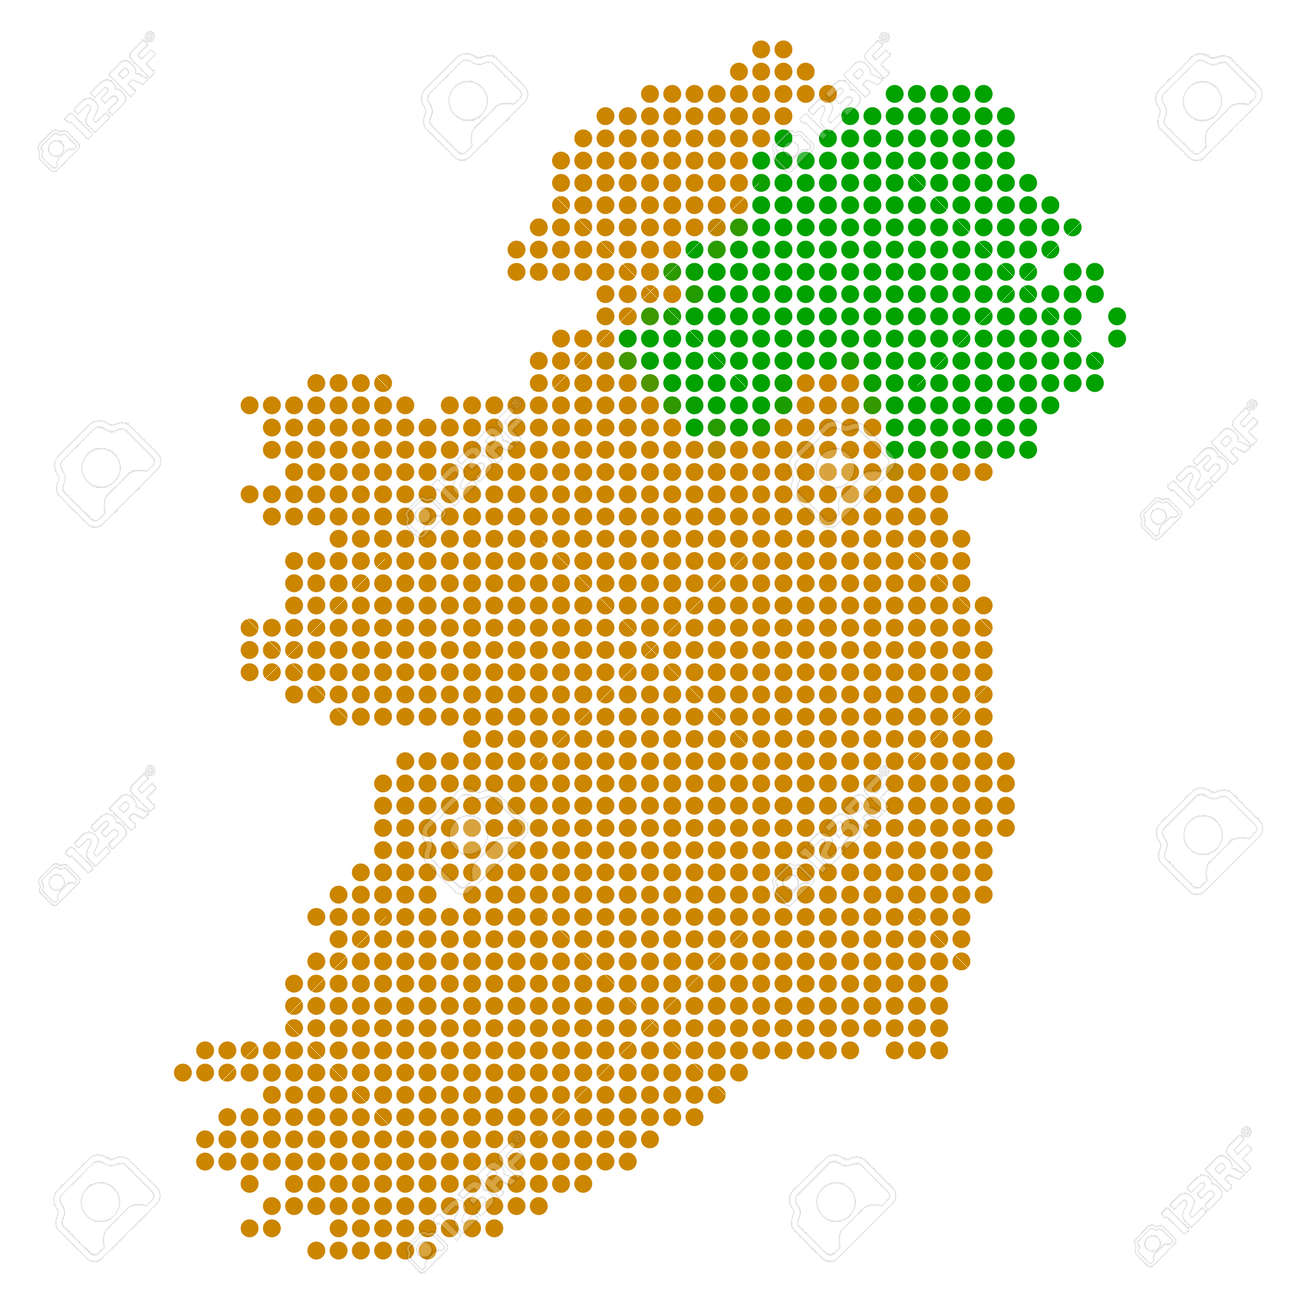 Small Map Of Ireland.Dotted Ireland Map Raster Composition Of Ireland Map Created